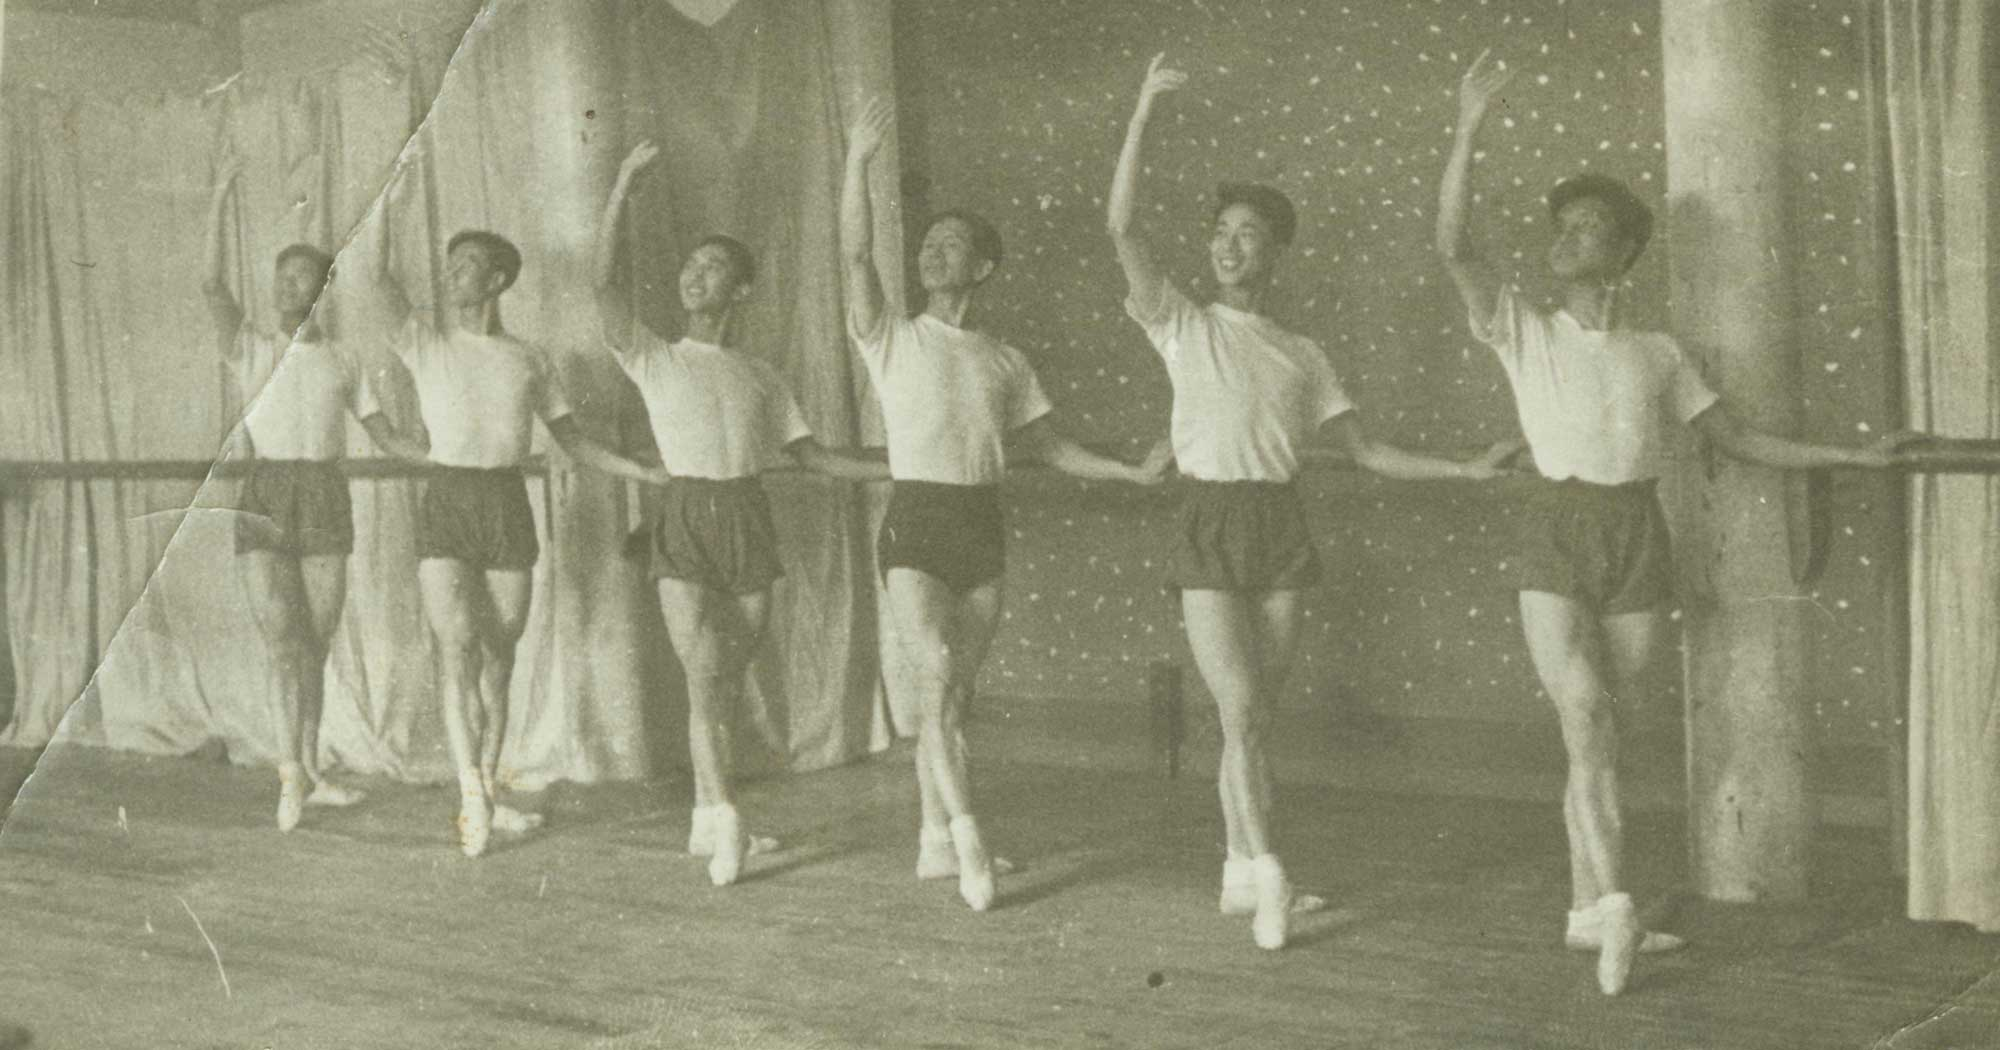 Male dancers pose at the ballet bar. Contributor: Zhao Dexian 赵得贤/조 득현 (1913-2002)